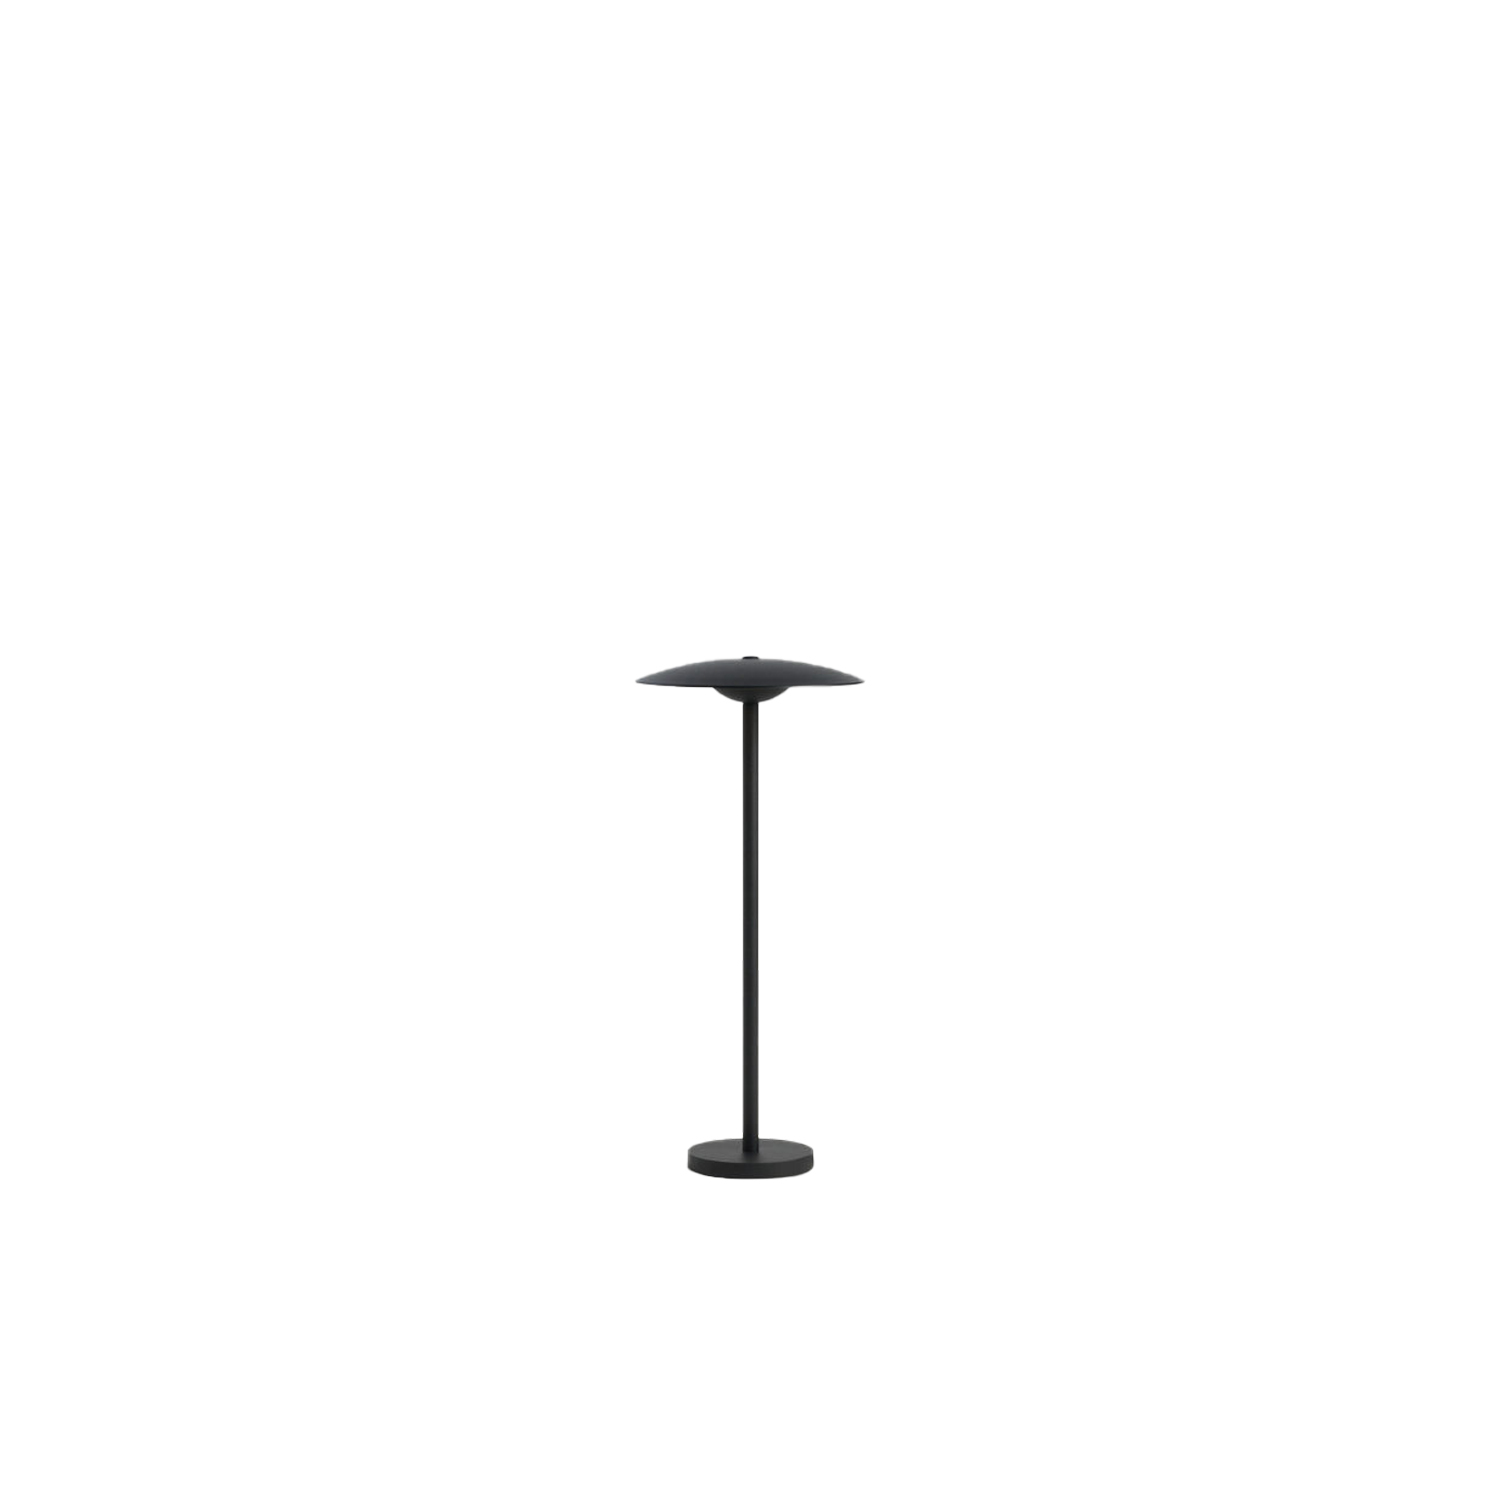 Ginger B 20/44 Outdoor Floor Lamp - The Ginger collection is moving outdoors, with wall sconces that can be installed individually or in a cluster, a new 15 cm sconce —perfect for passageways and small outdoor areas—, a lamppost and small floor lamps.  This year, the collection features new bollard lamps, raised by means of a post that can be buried in dirt or gravel, perfect for illuminating pathways, gardens, terraces, and walls, and blending nicely with vegetation. | Matter of Stuff